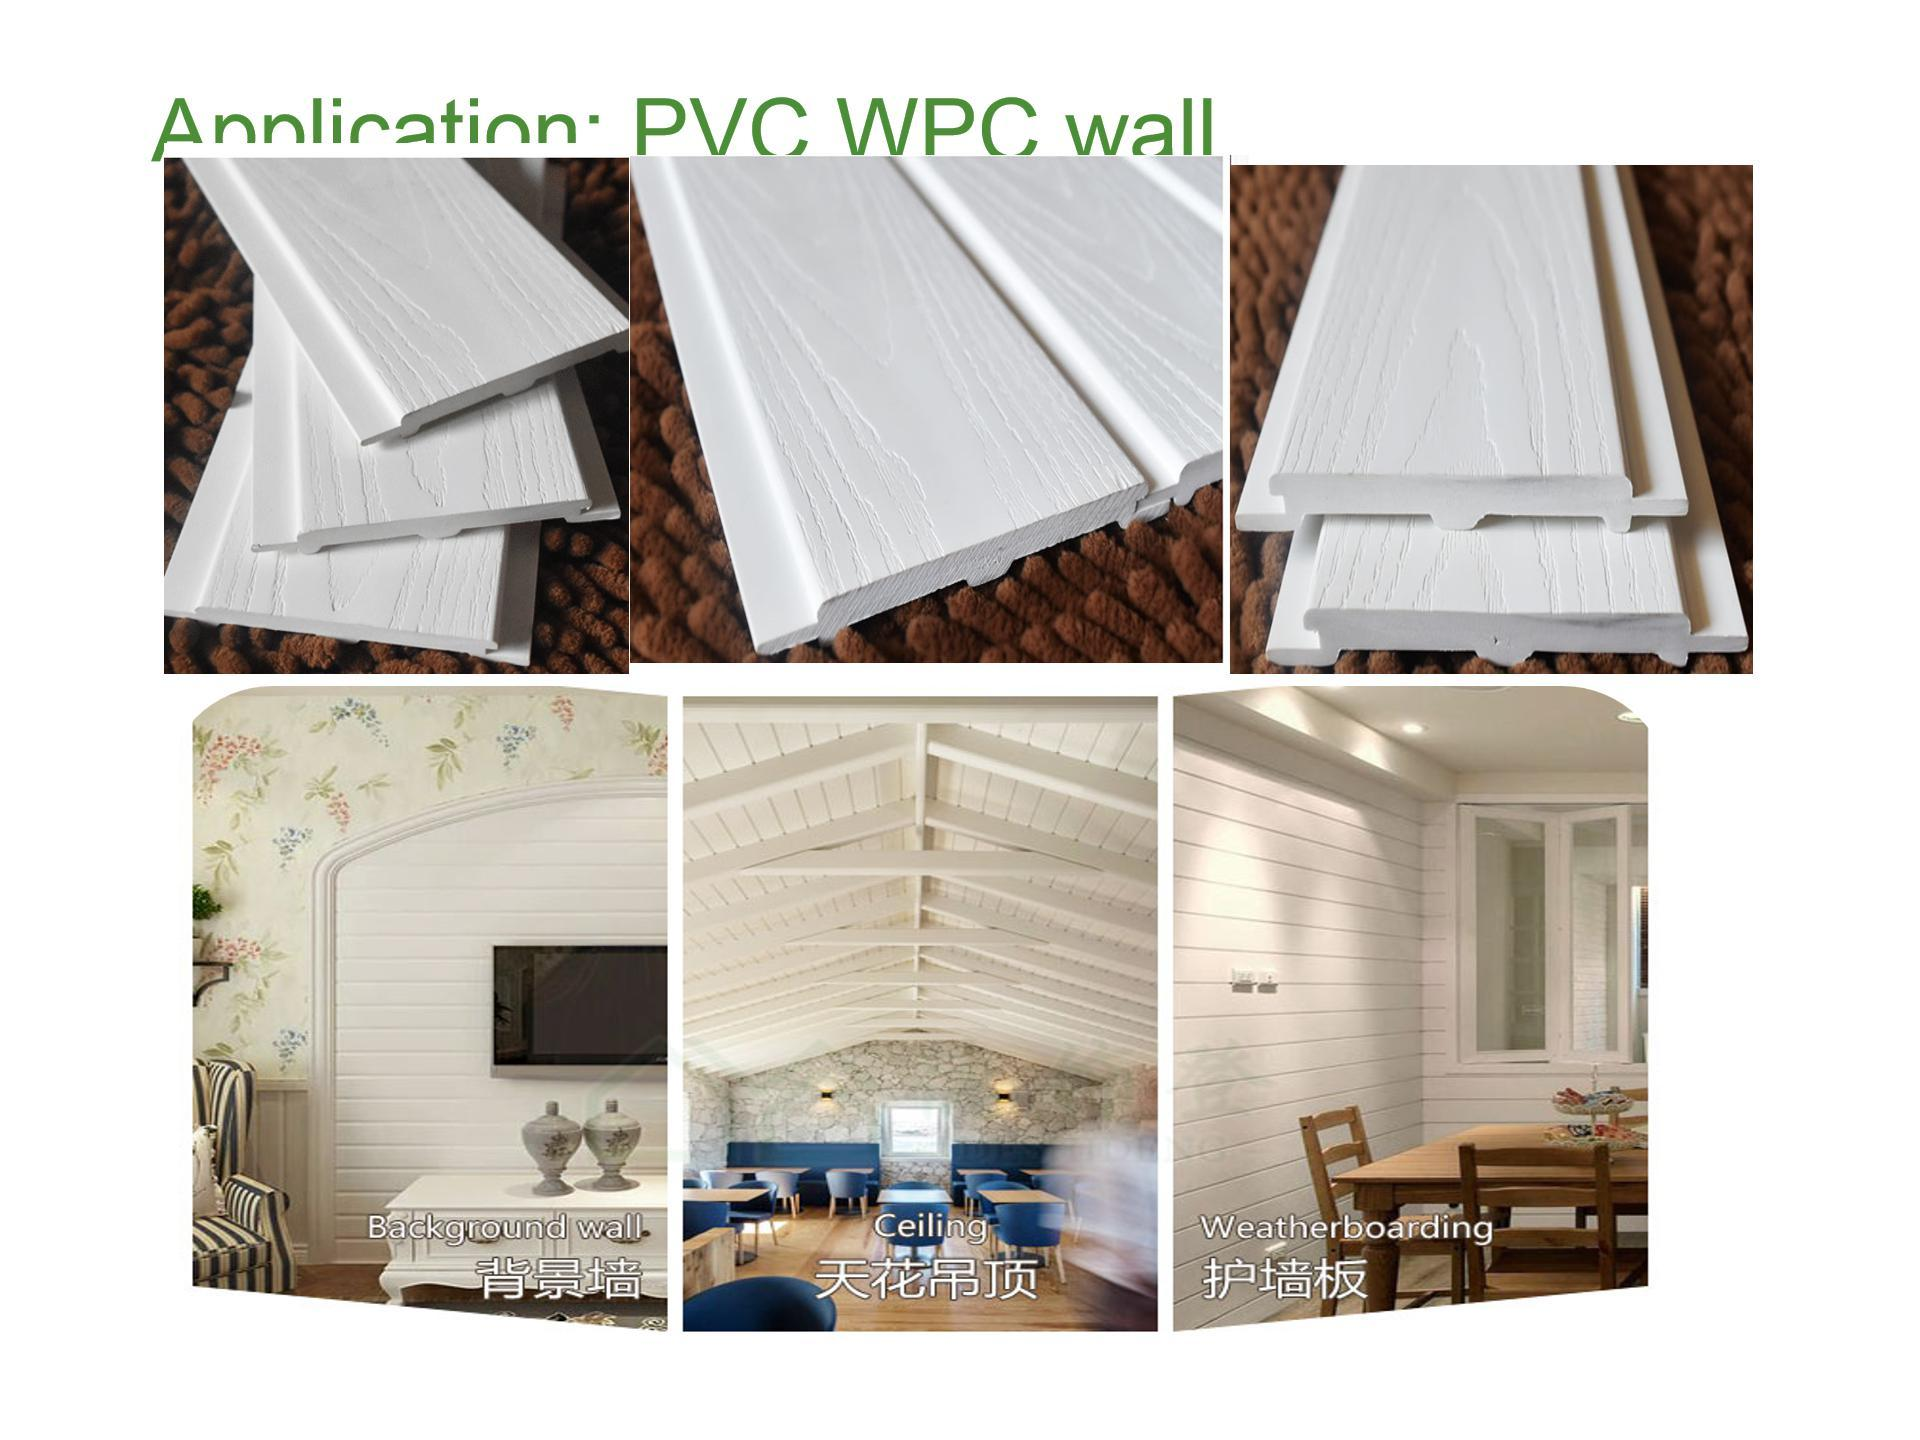 PVC WPC wall panel with embossing